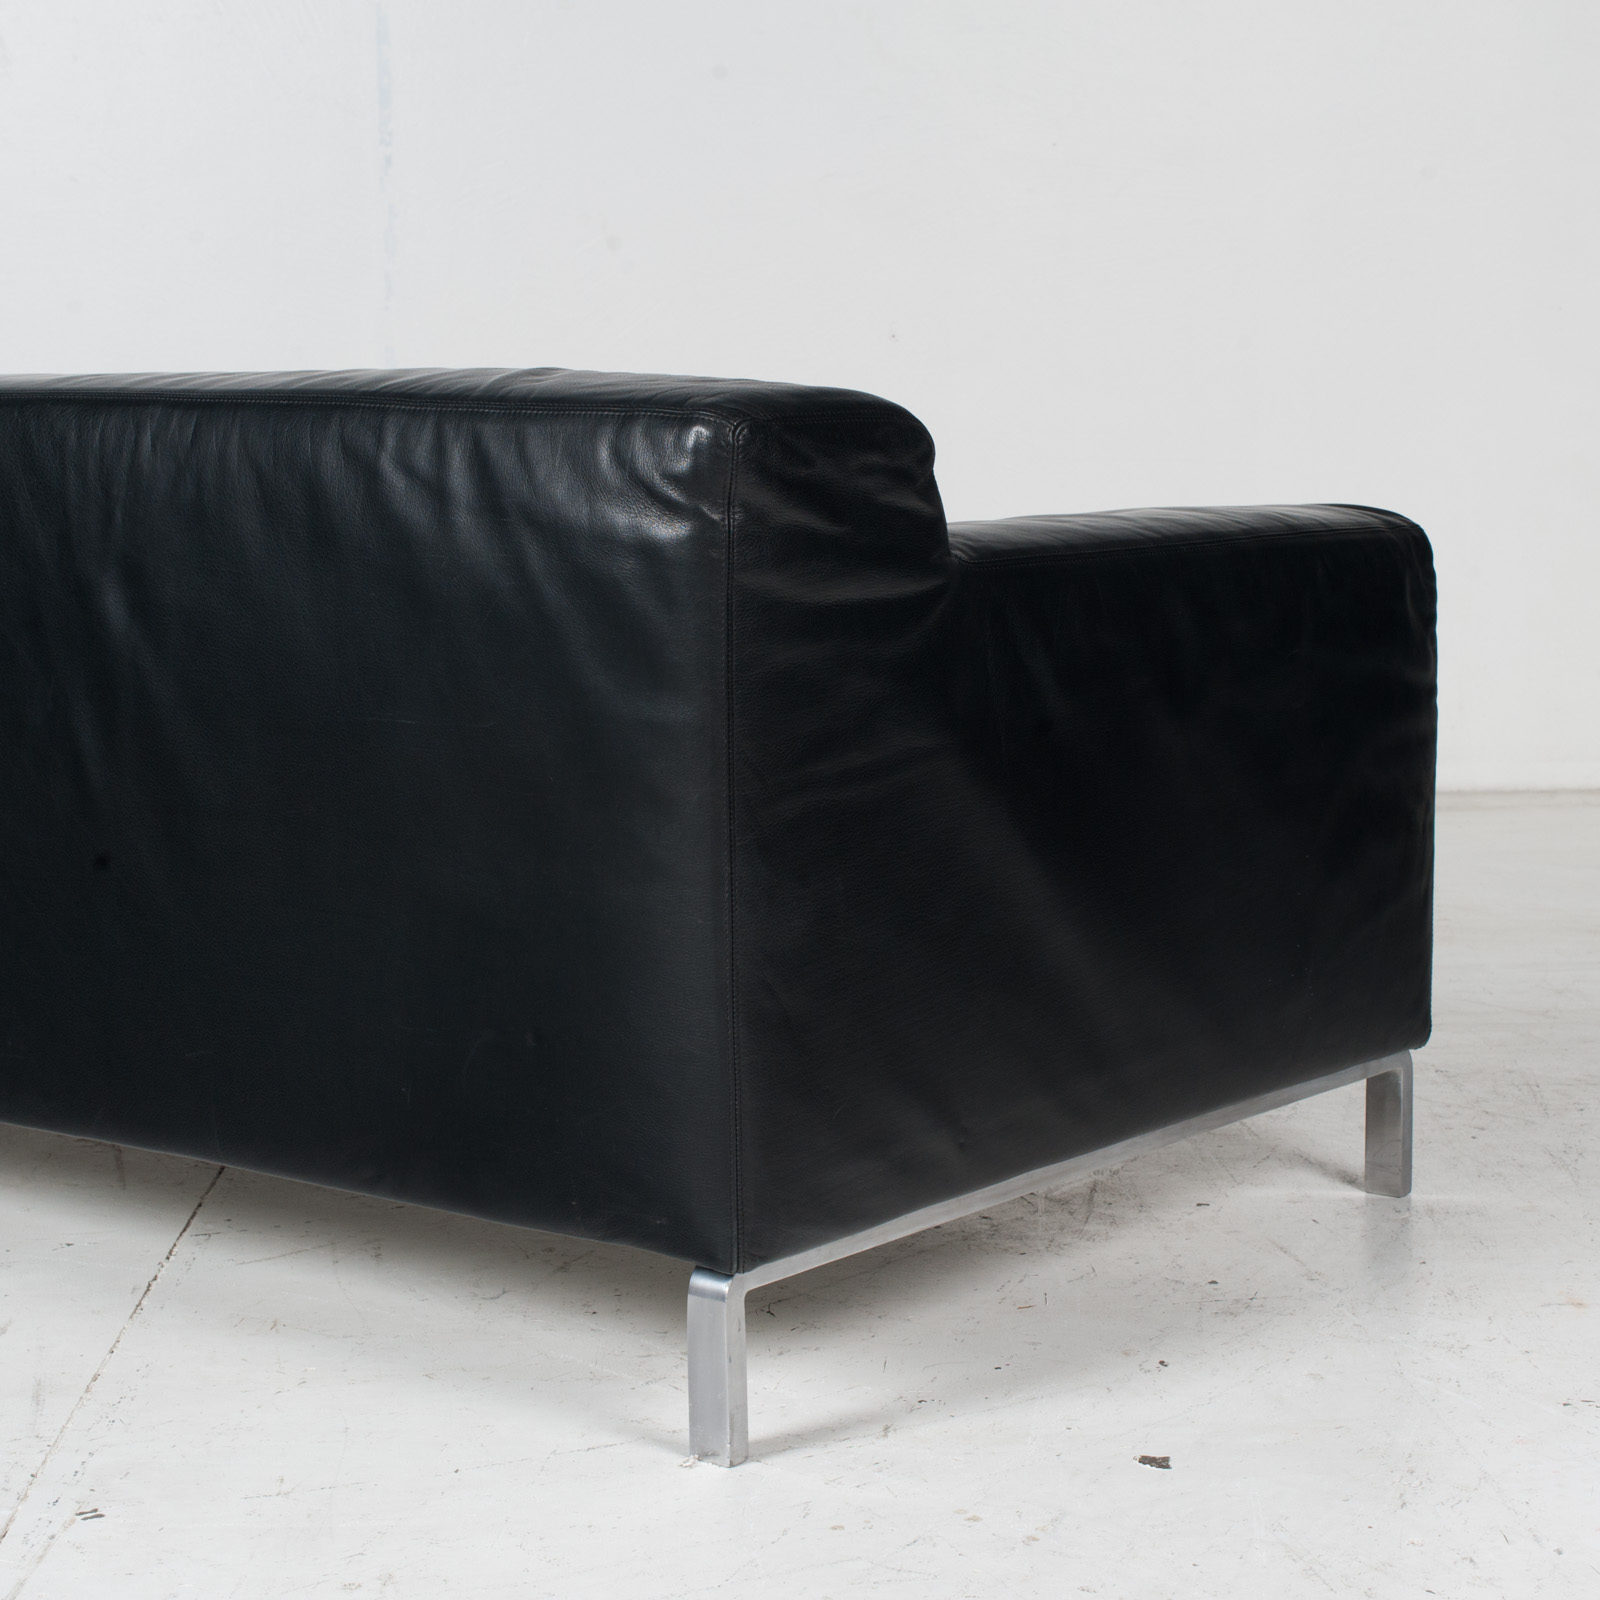 Model Greg 2 Seat Sofa By E. Progetti With Back Upholstered In Black Leather And Seat In Blue Fabric With Chrome Legs, 1960s, Italy 8